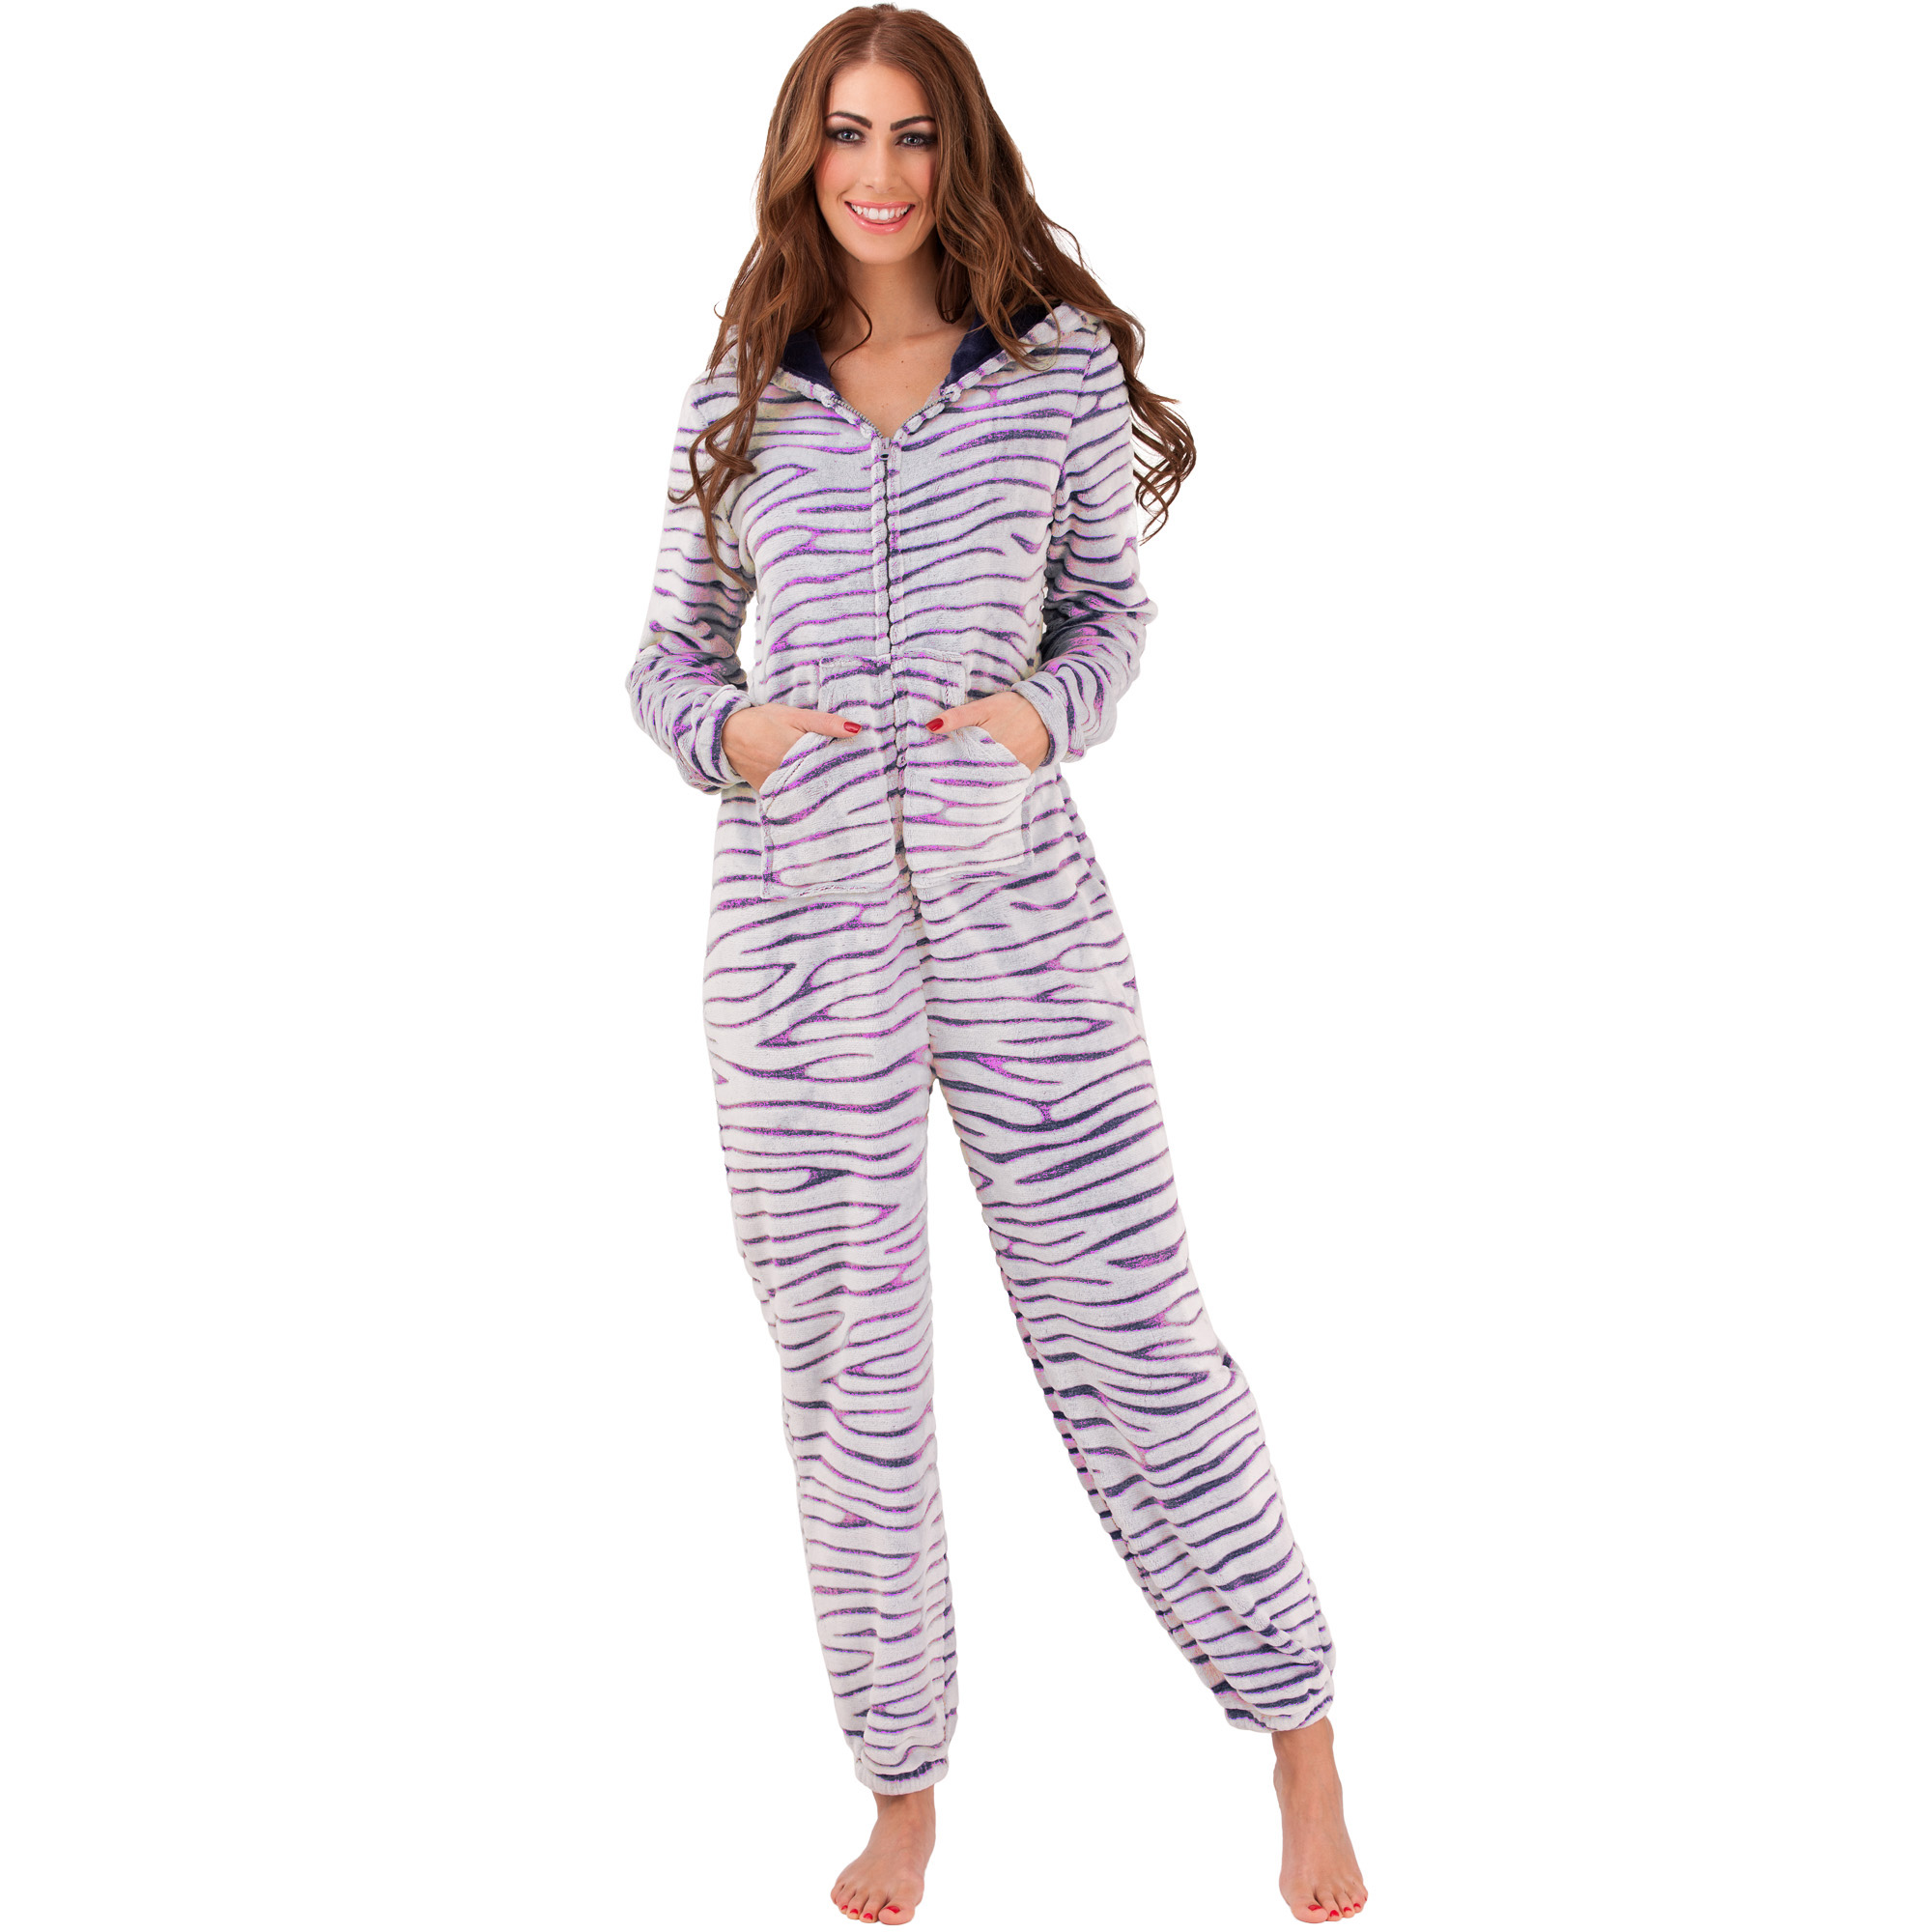 womens jumpsuit overalls onesie pyjama onesie onesie loungewear jogging new ebay. Black Bedroom Furniture Sets. Home Design Ideas